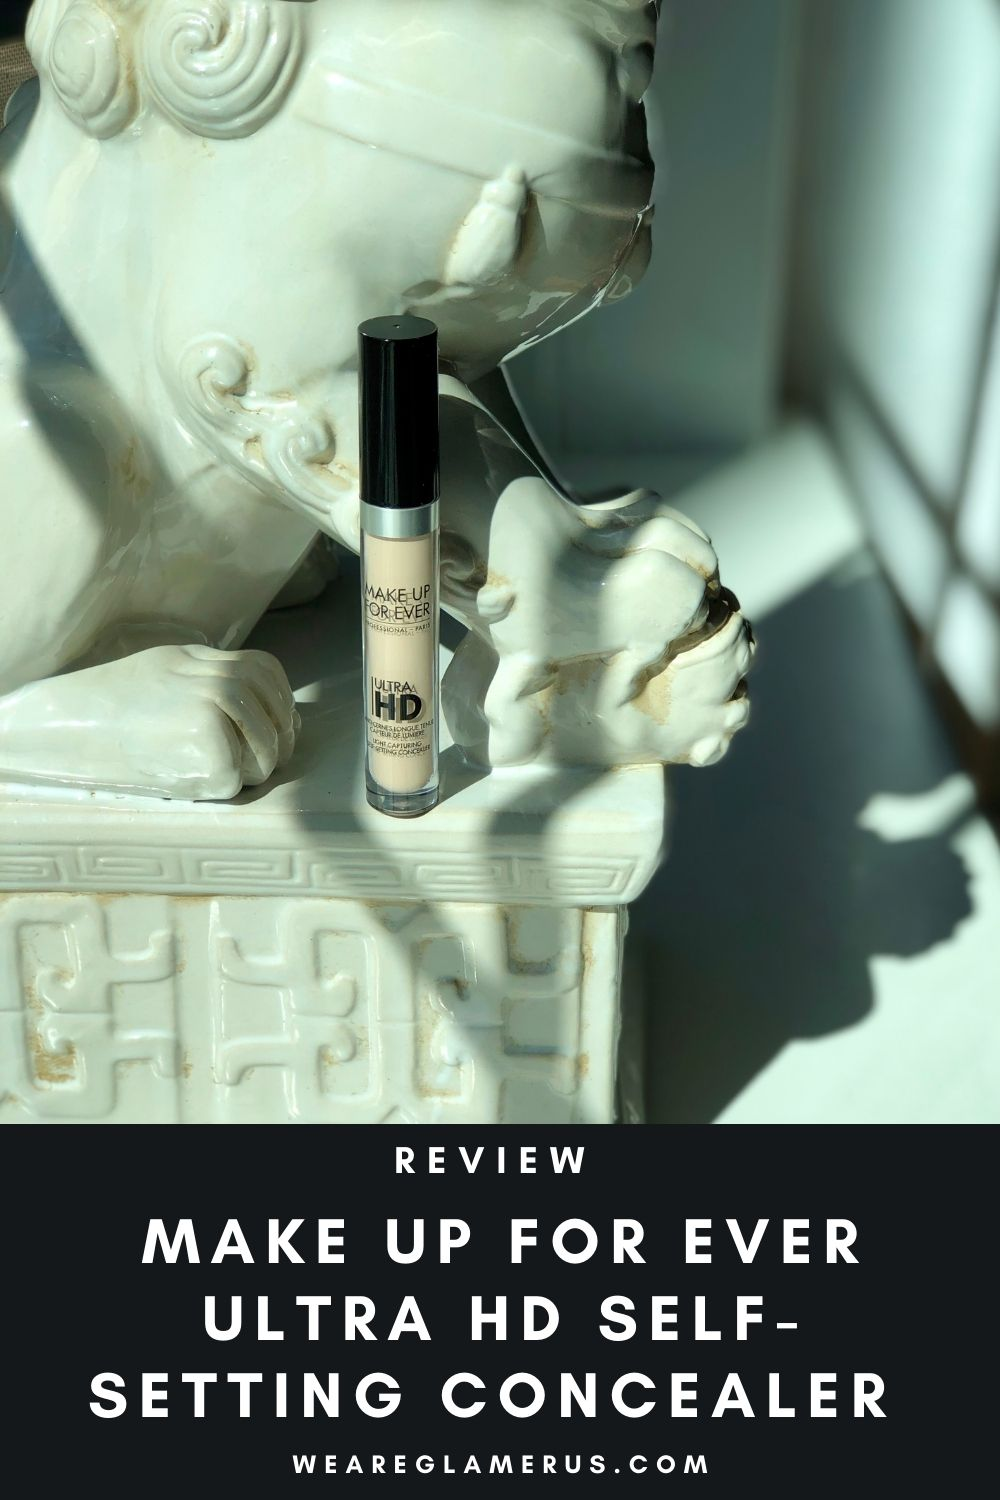 Check out my in-depth review of the Make Up For Ever Ultra HD Self-Setting Concealer in today's post!